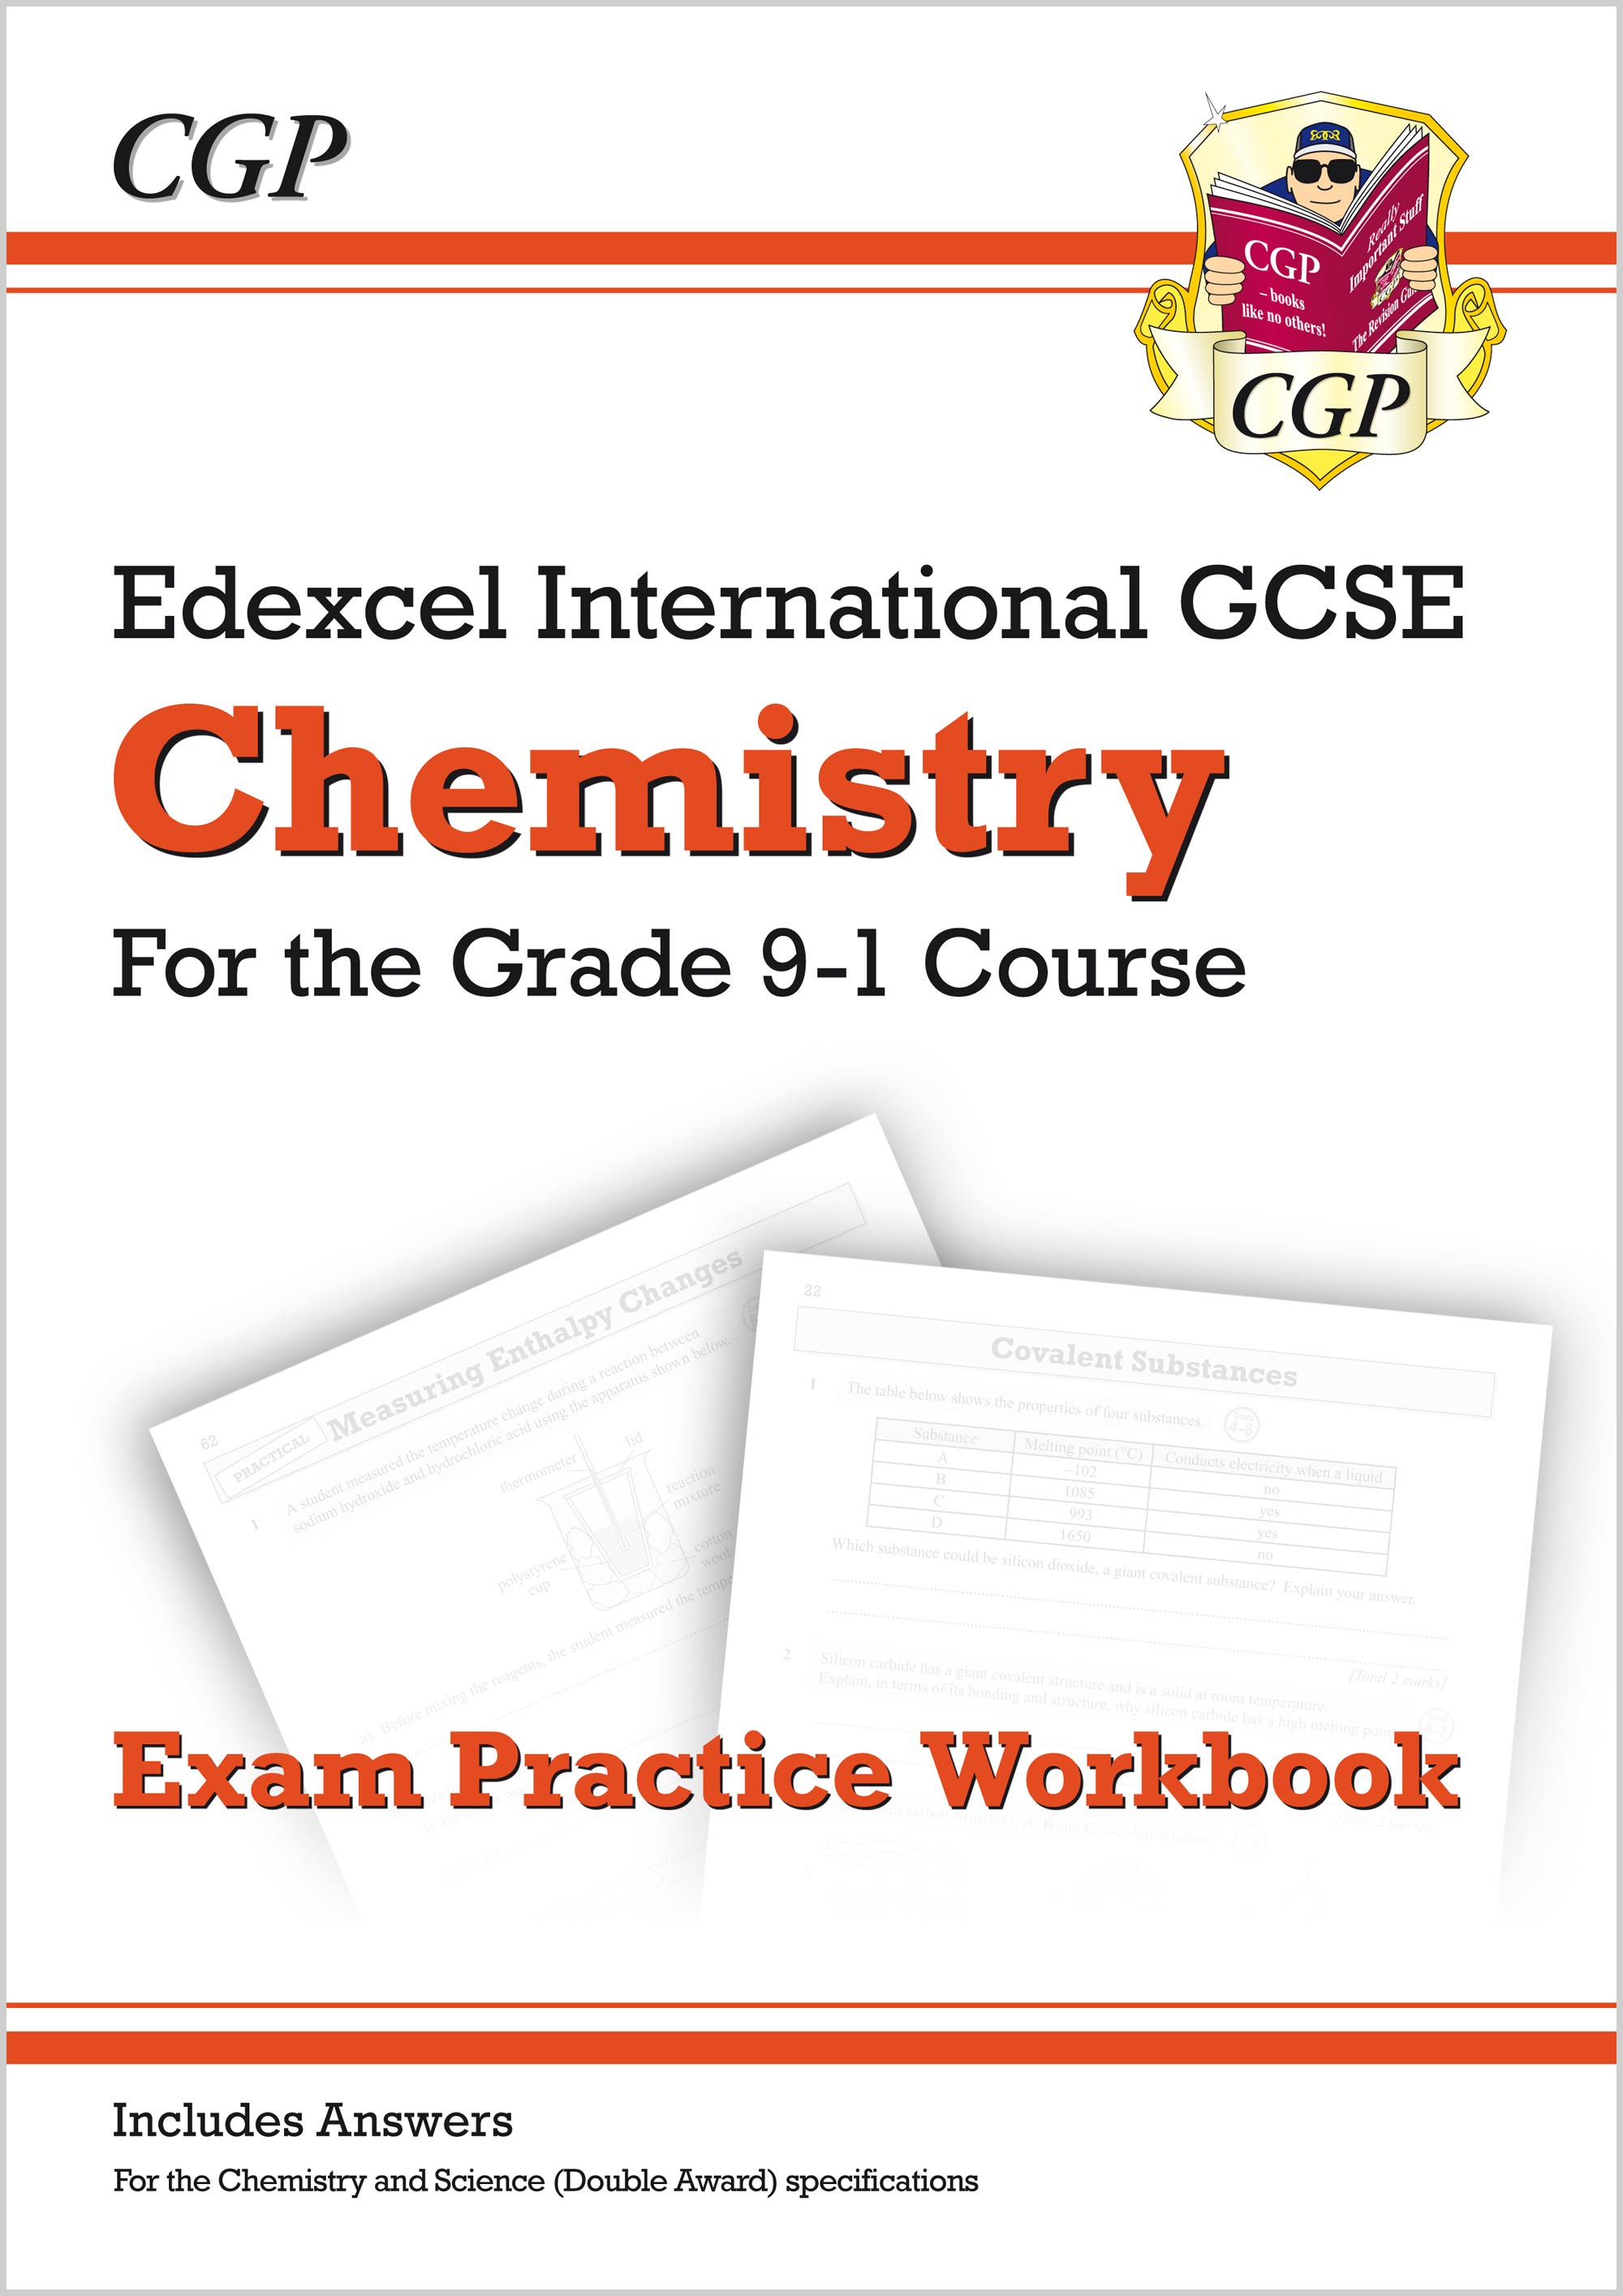 CEQI42 - New Grade 9-1 Edexcel International GCSE Chemistry: Exam Practice Workbook (includes Answer